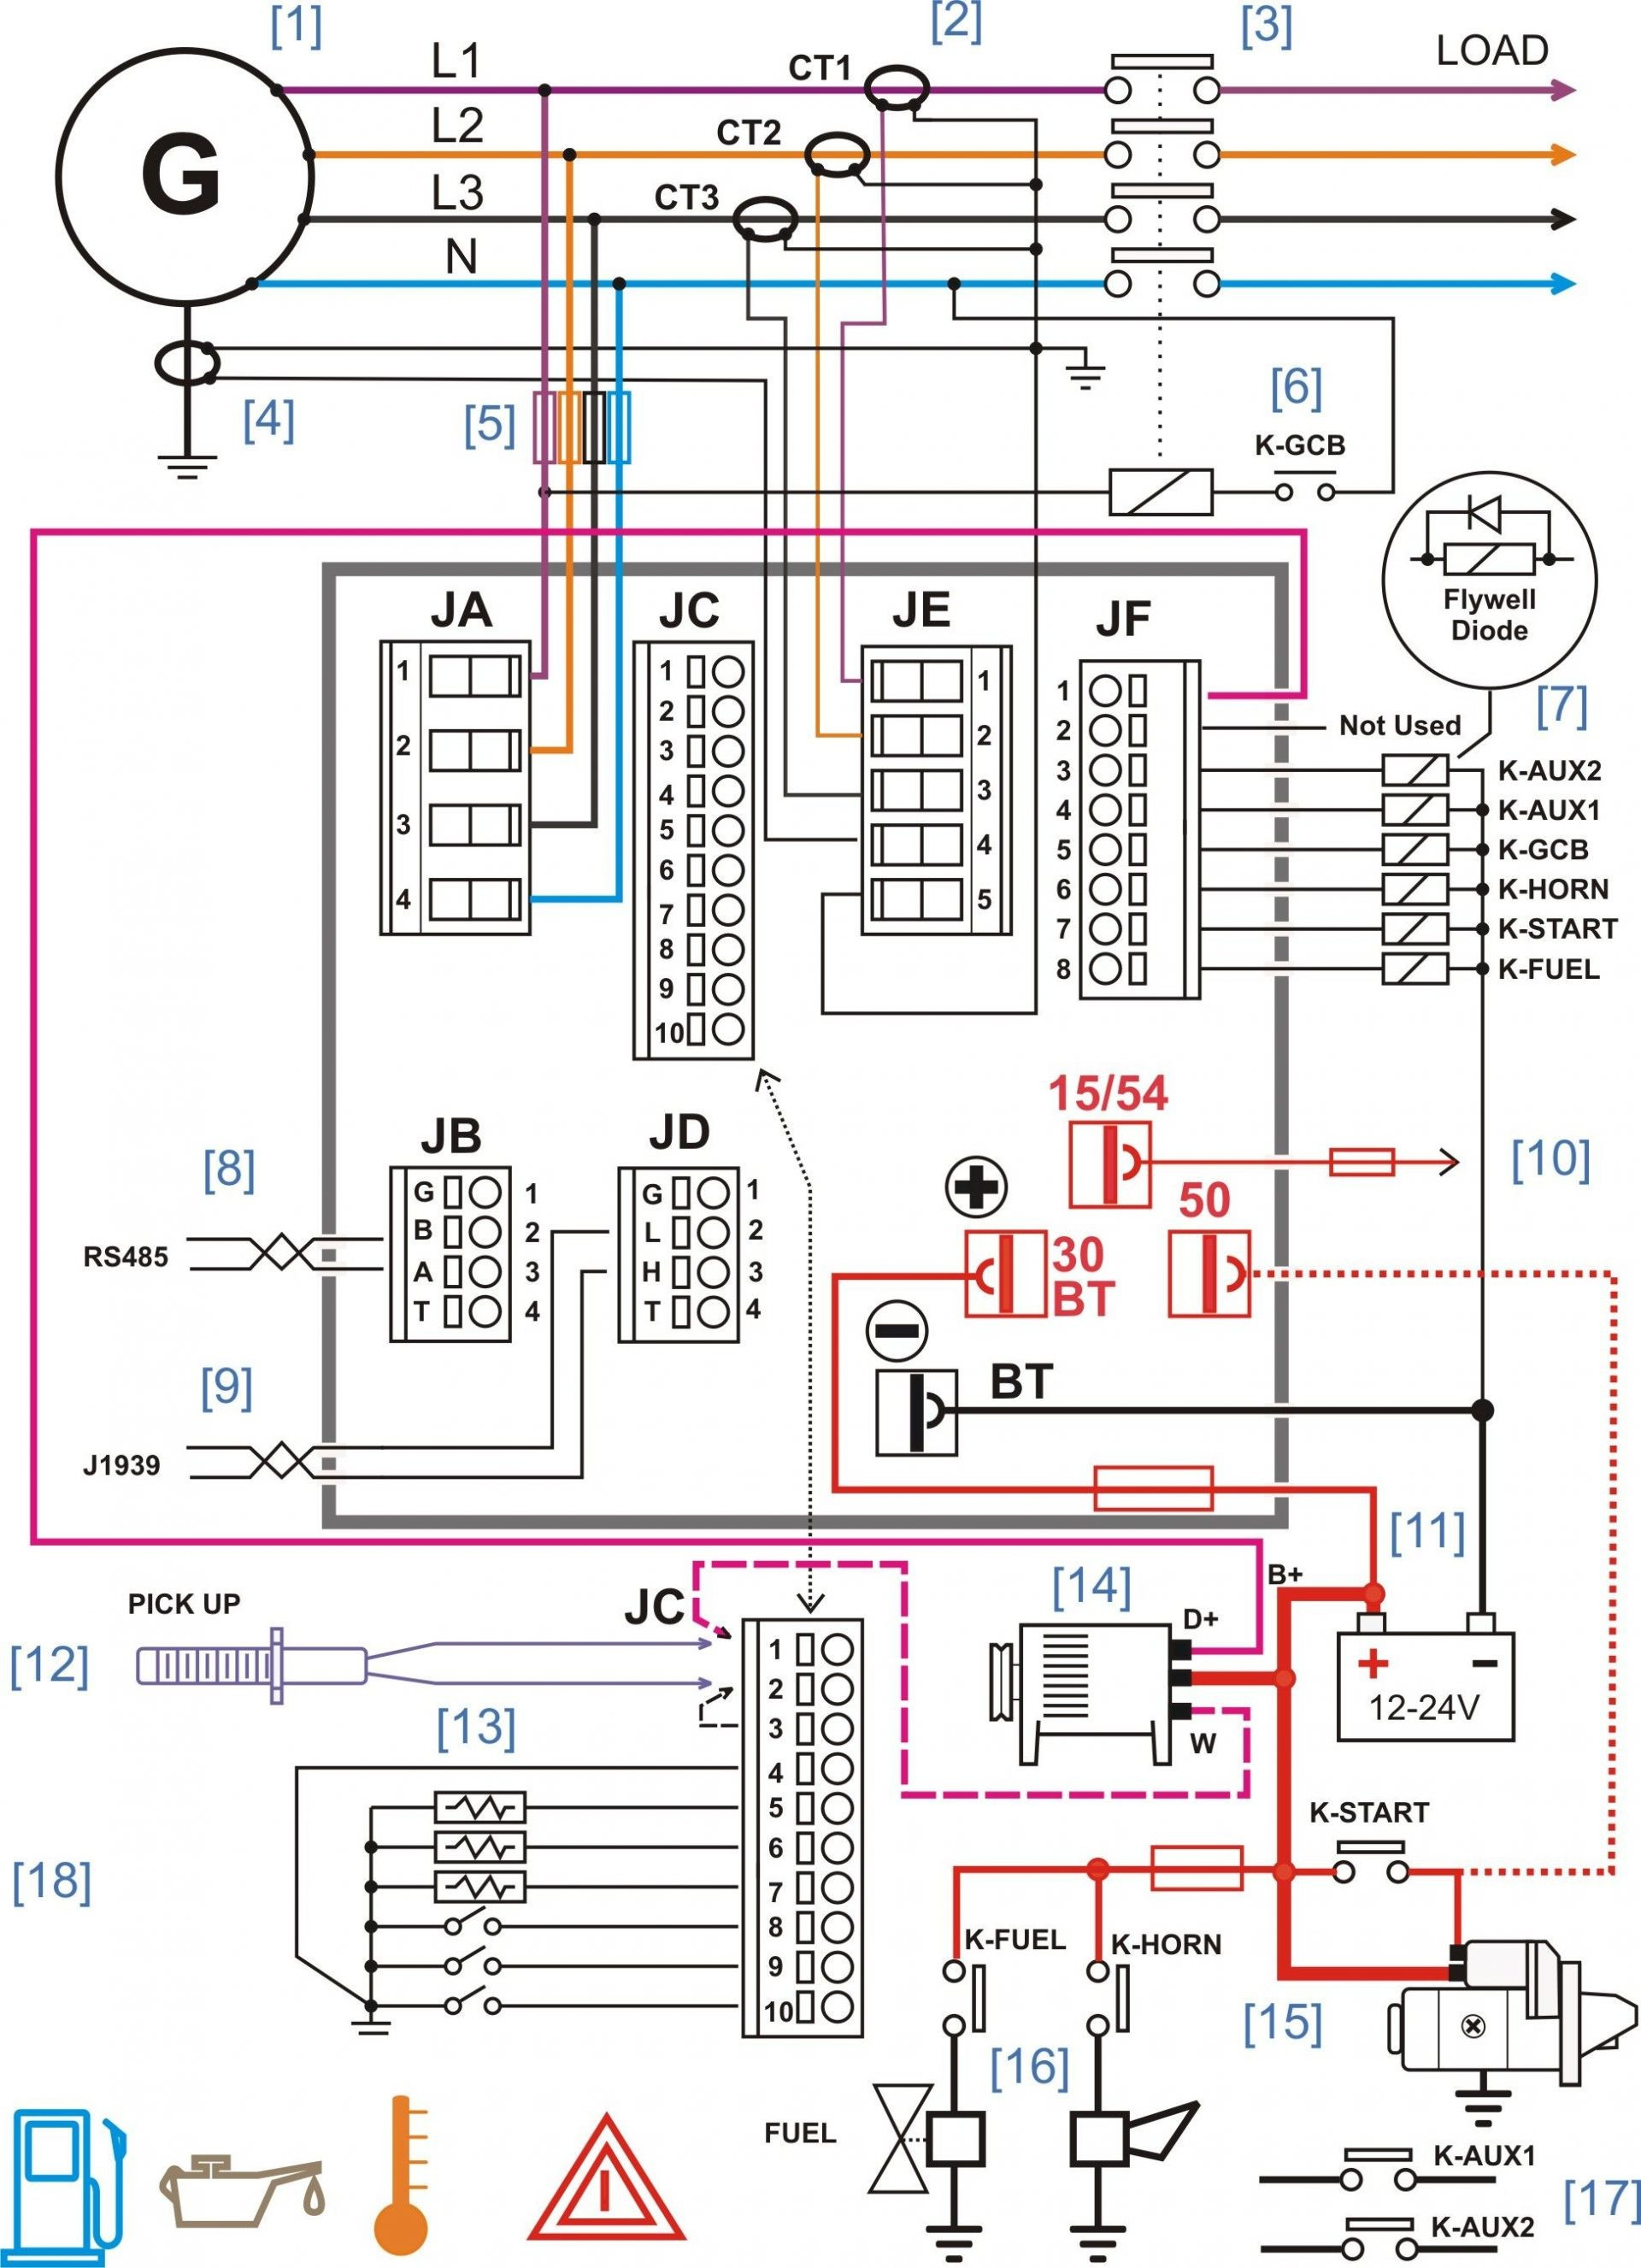 rv distribution panel wiring diagram sample  diagram of electrical distribution panel wiring #10